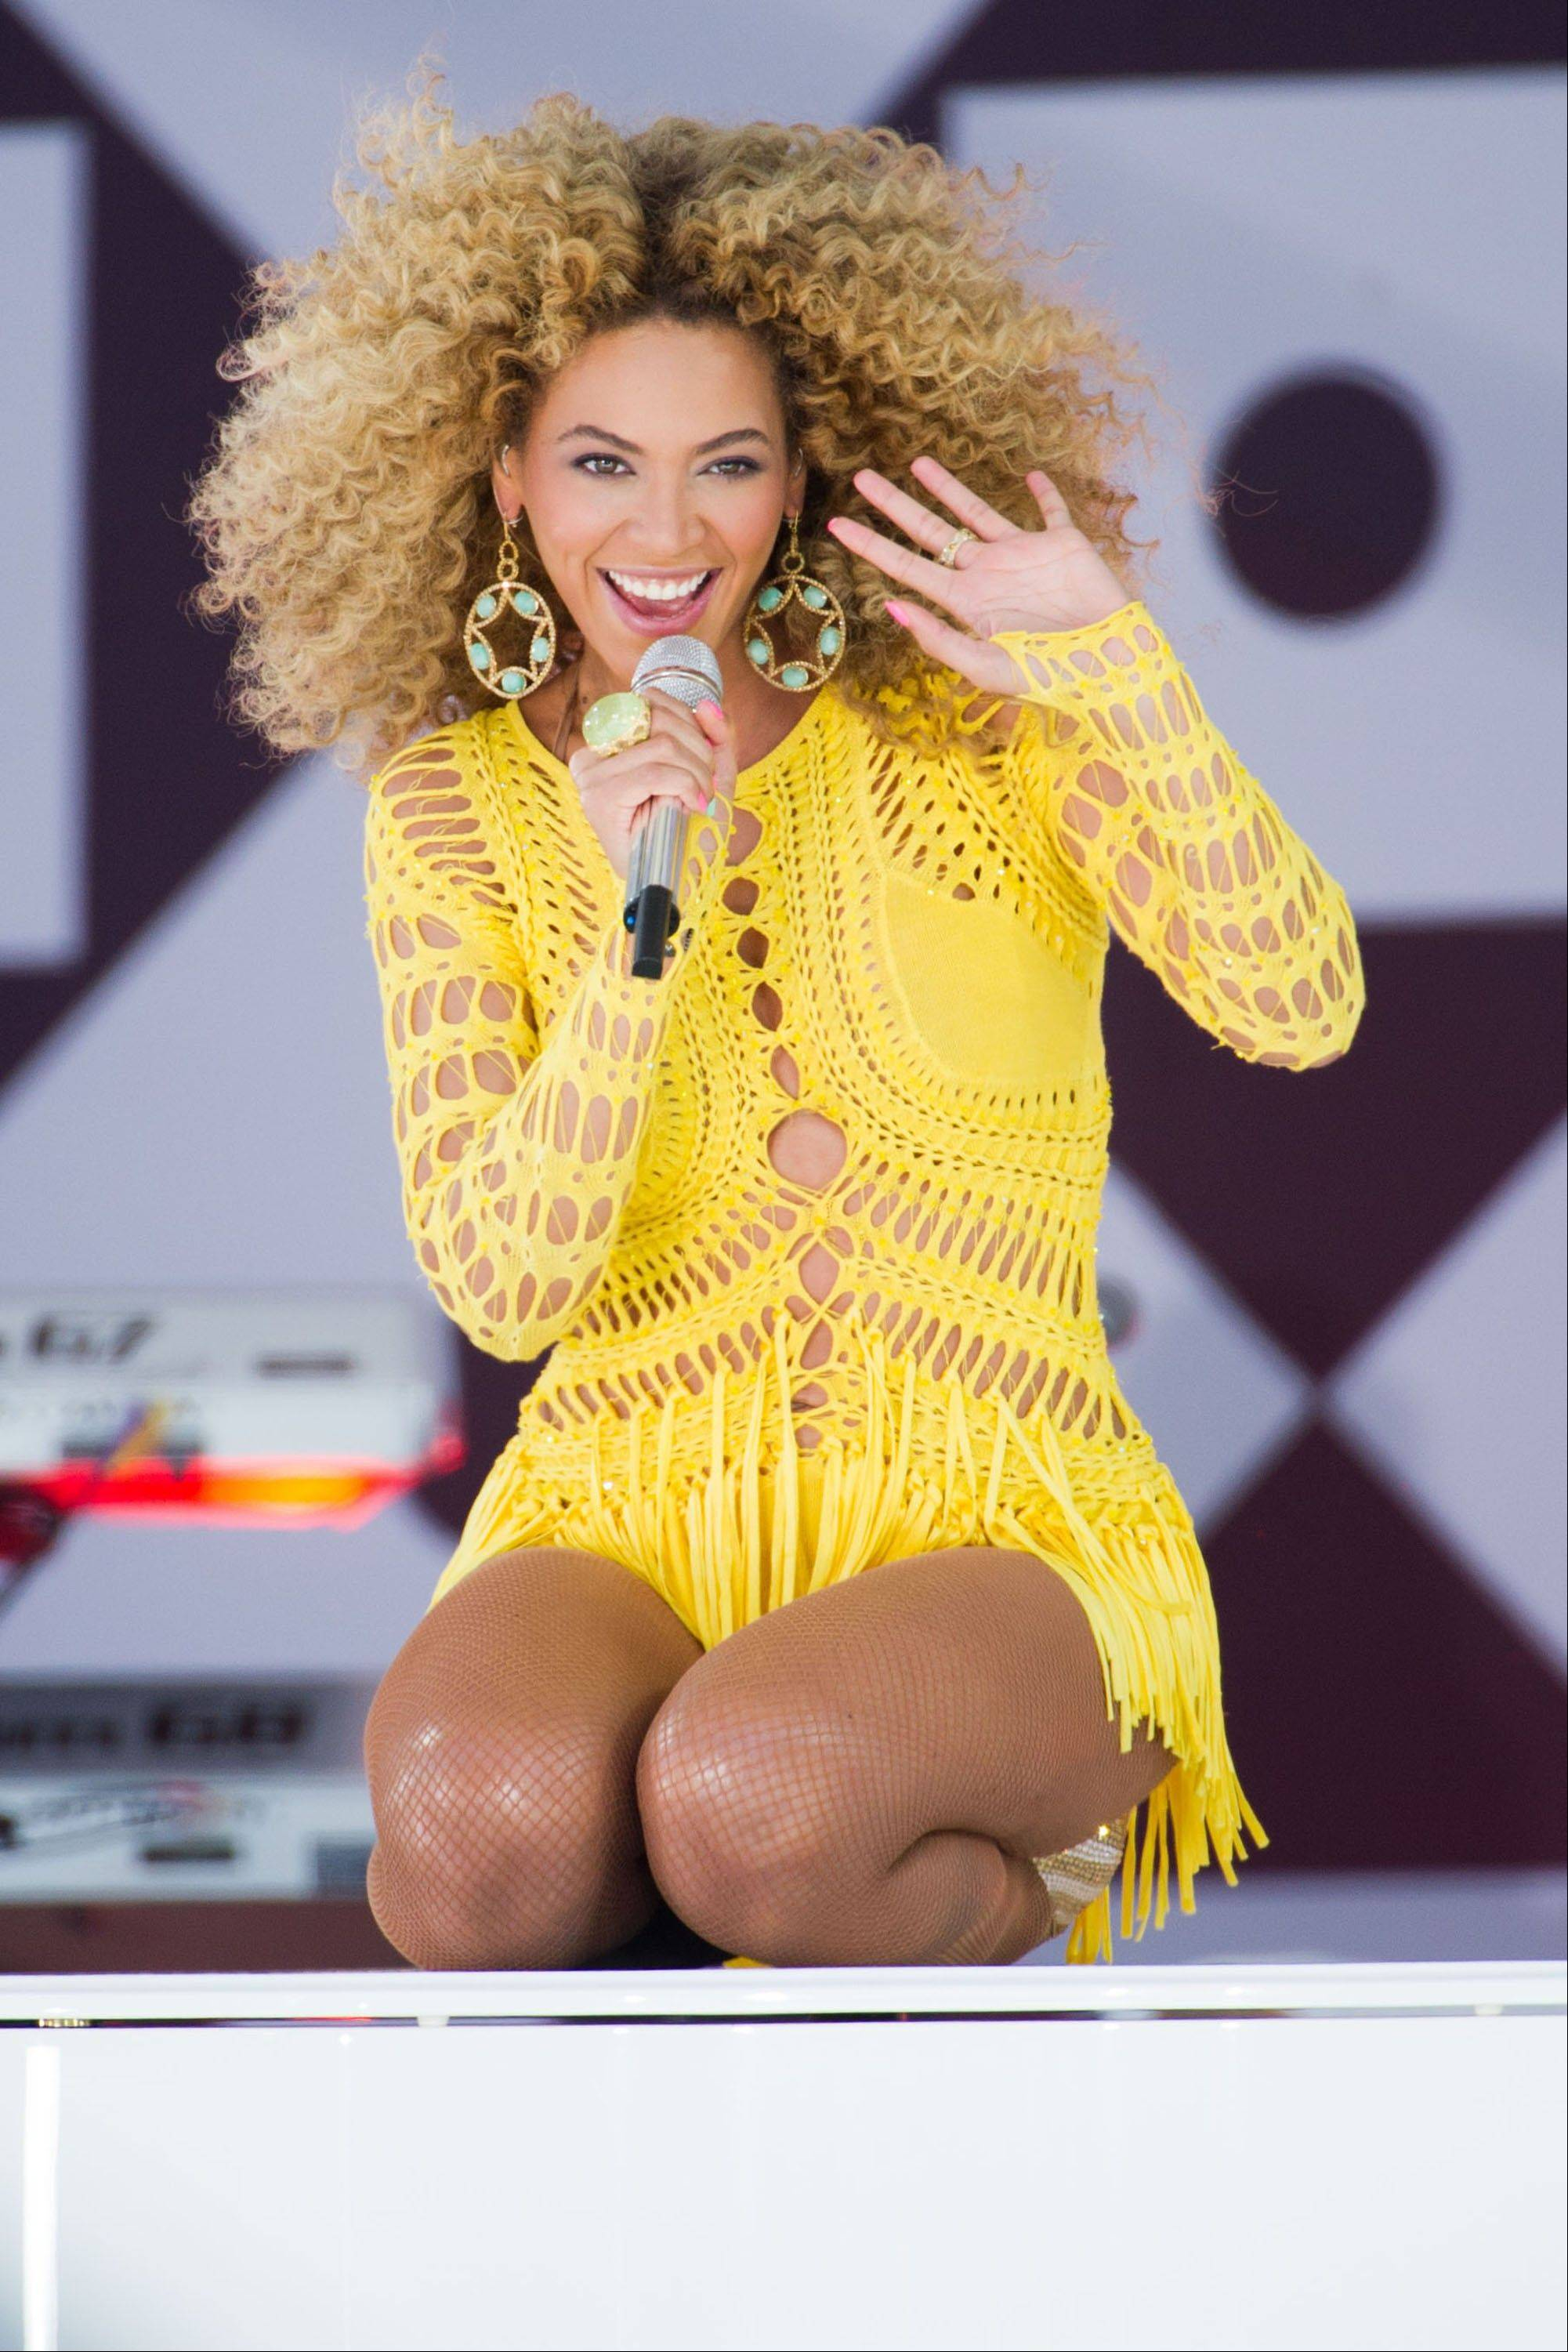 Through a photo contest, 100 fans will join Beyonc� onstage during the singer�s halftime show performance at the 2013 Super Bowl on Feb. 3.